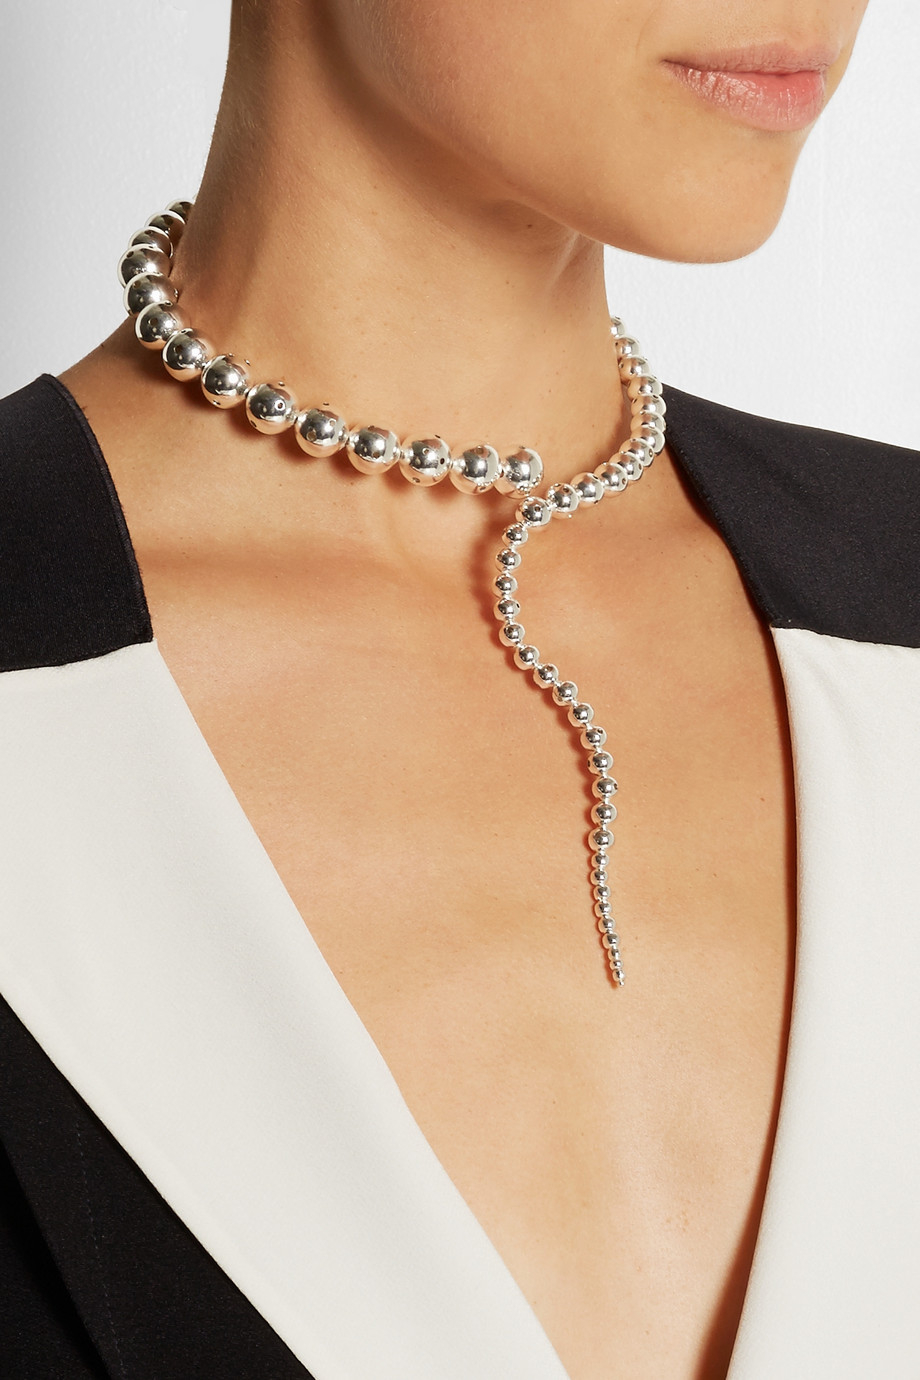 Paula Mendoza Glaucus Silver-Plated Necklace in Metallic